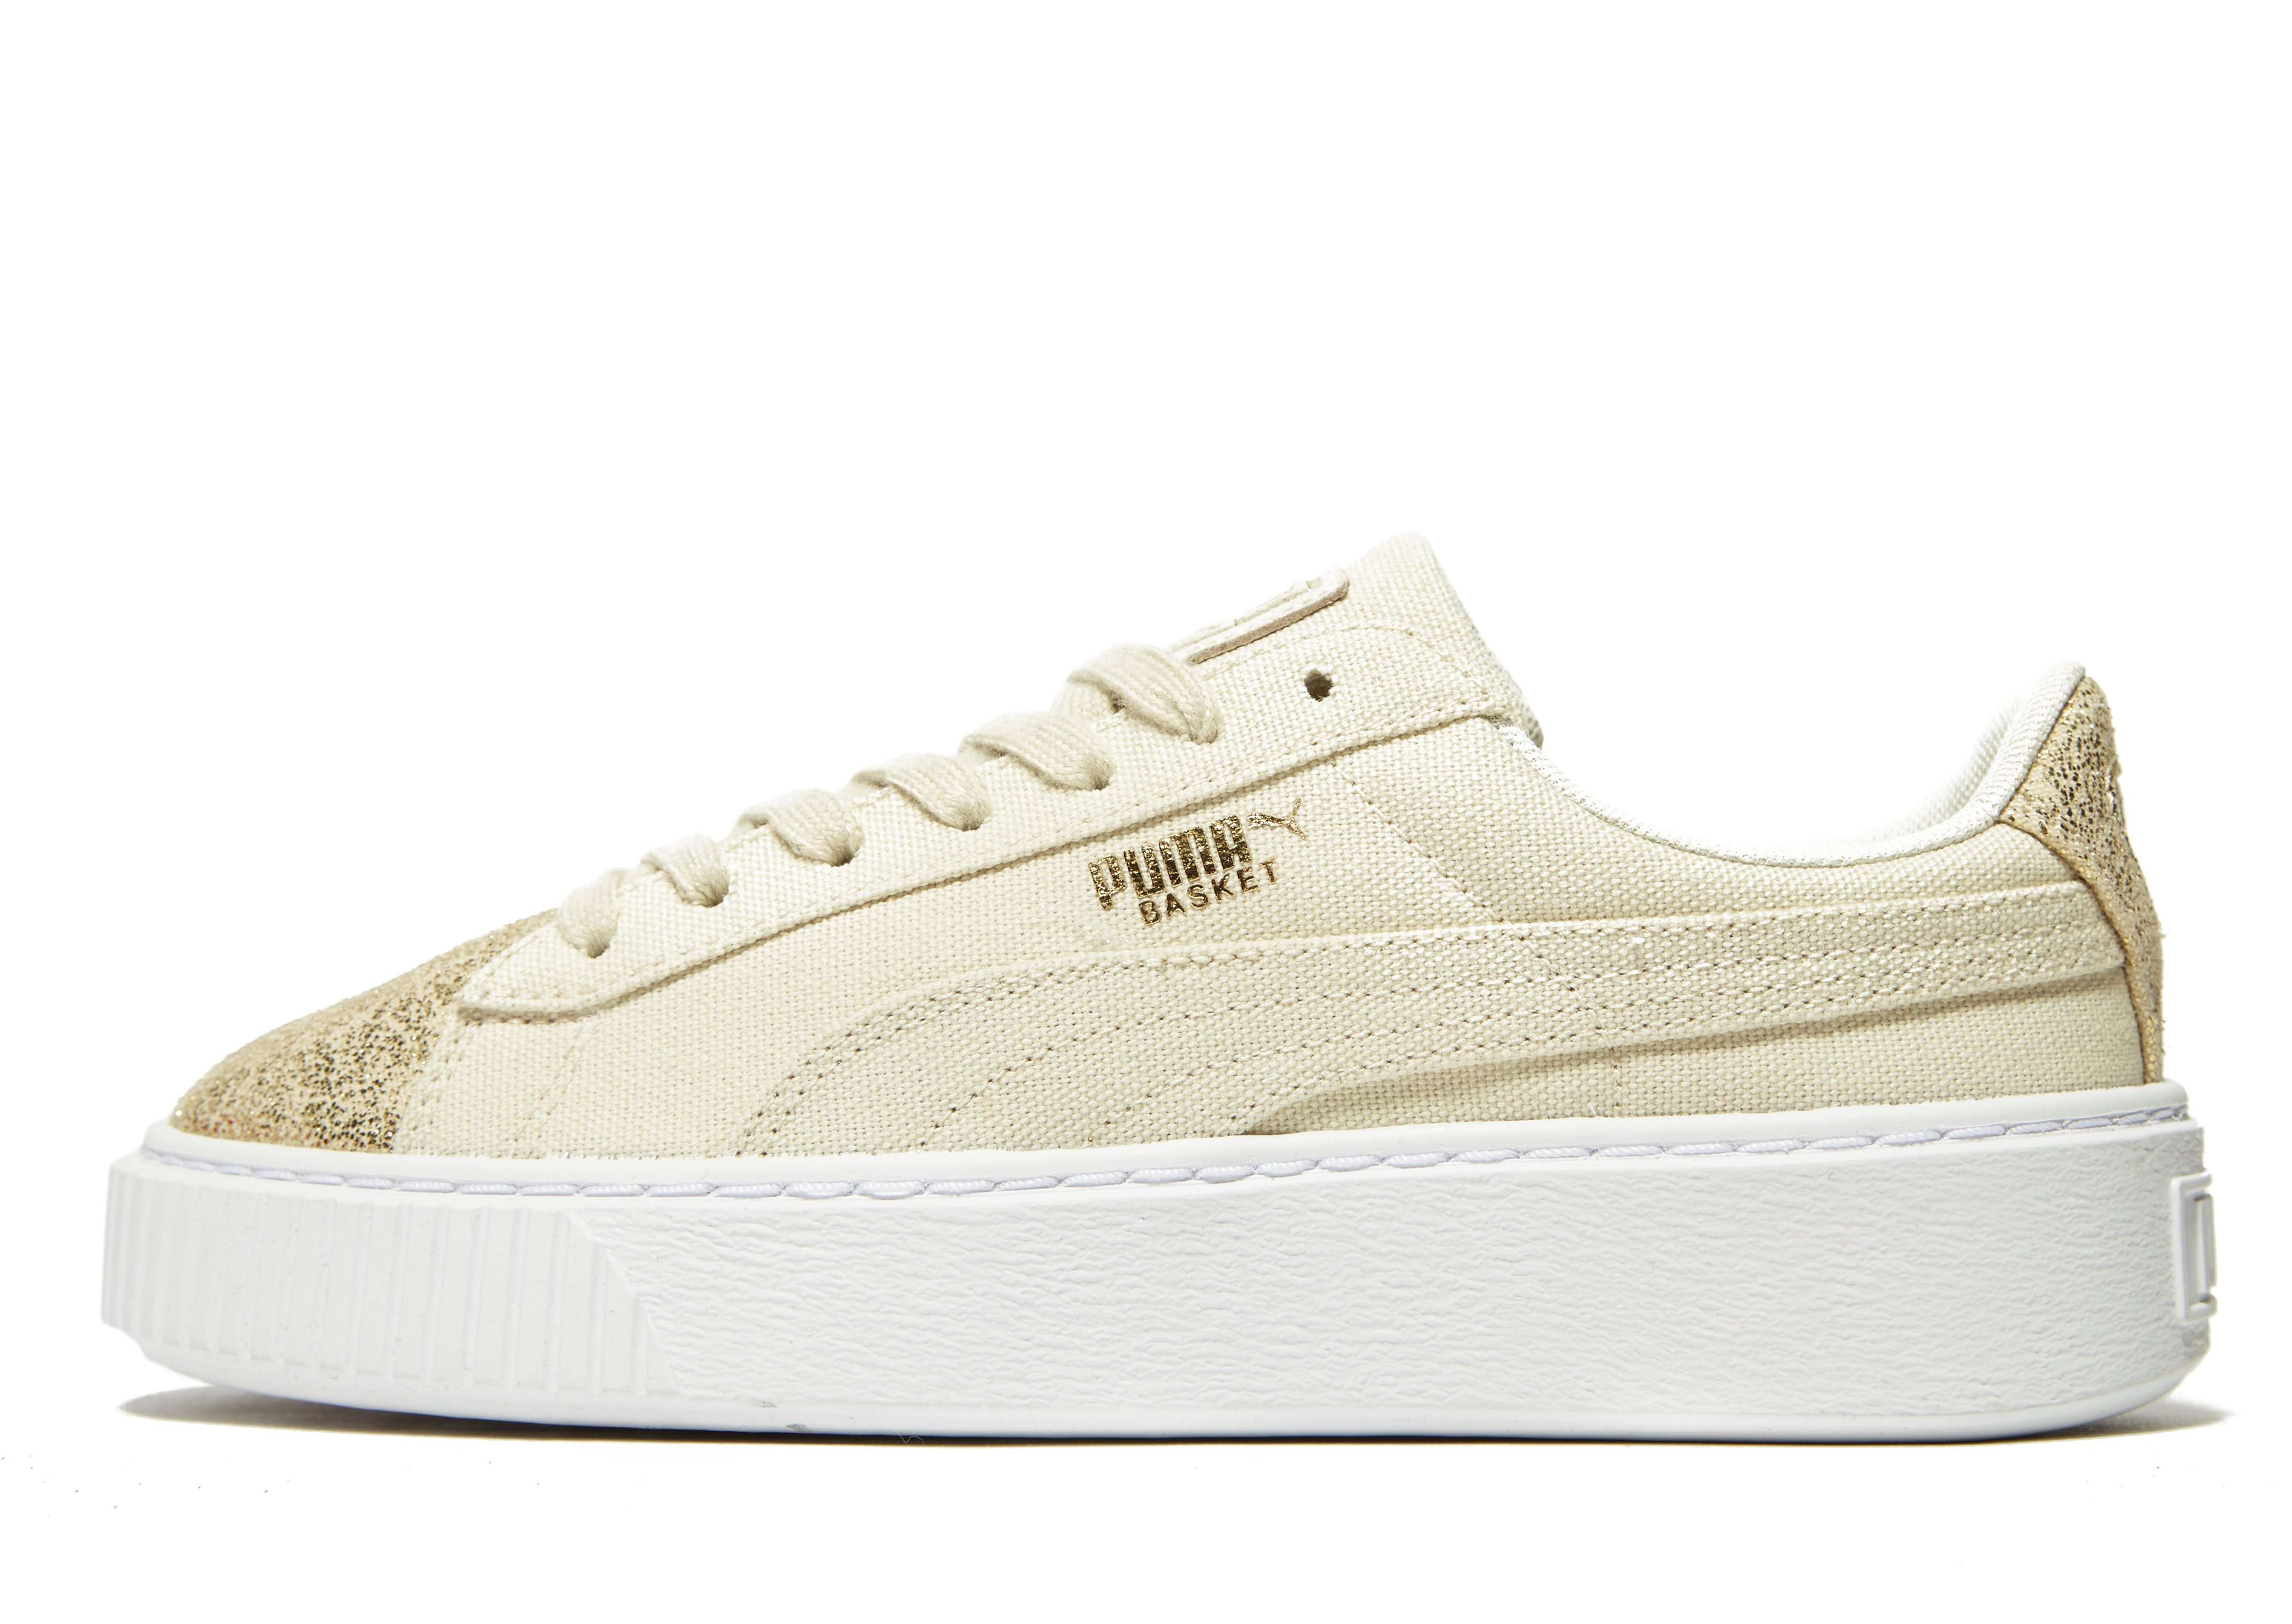 PUMA Basket Platform Canvas - Women's Classic Trainers - Brown 030210